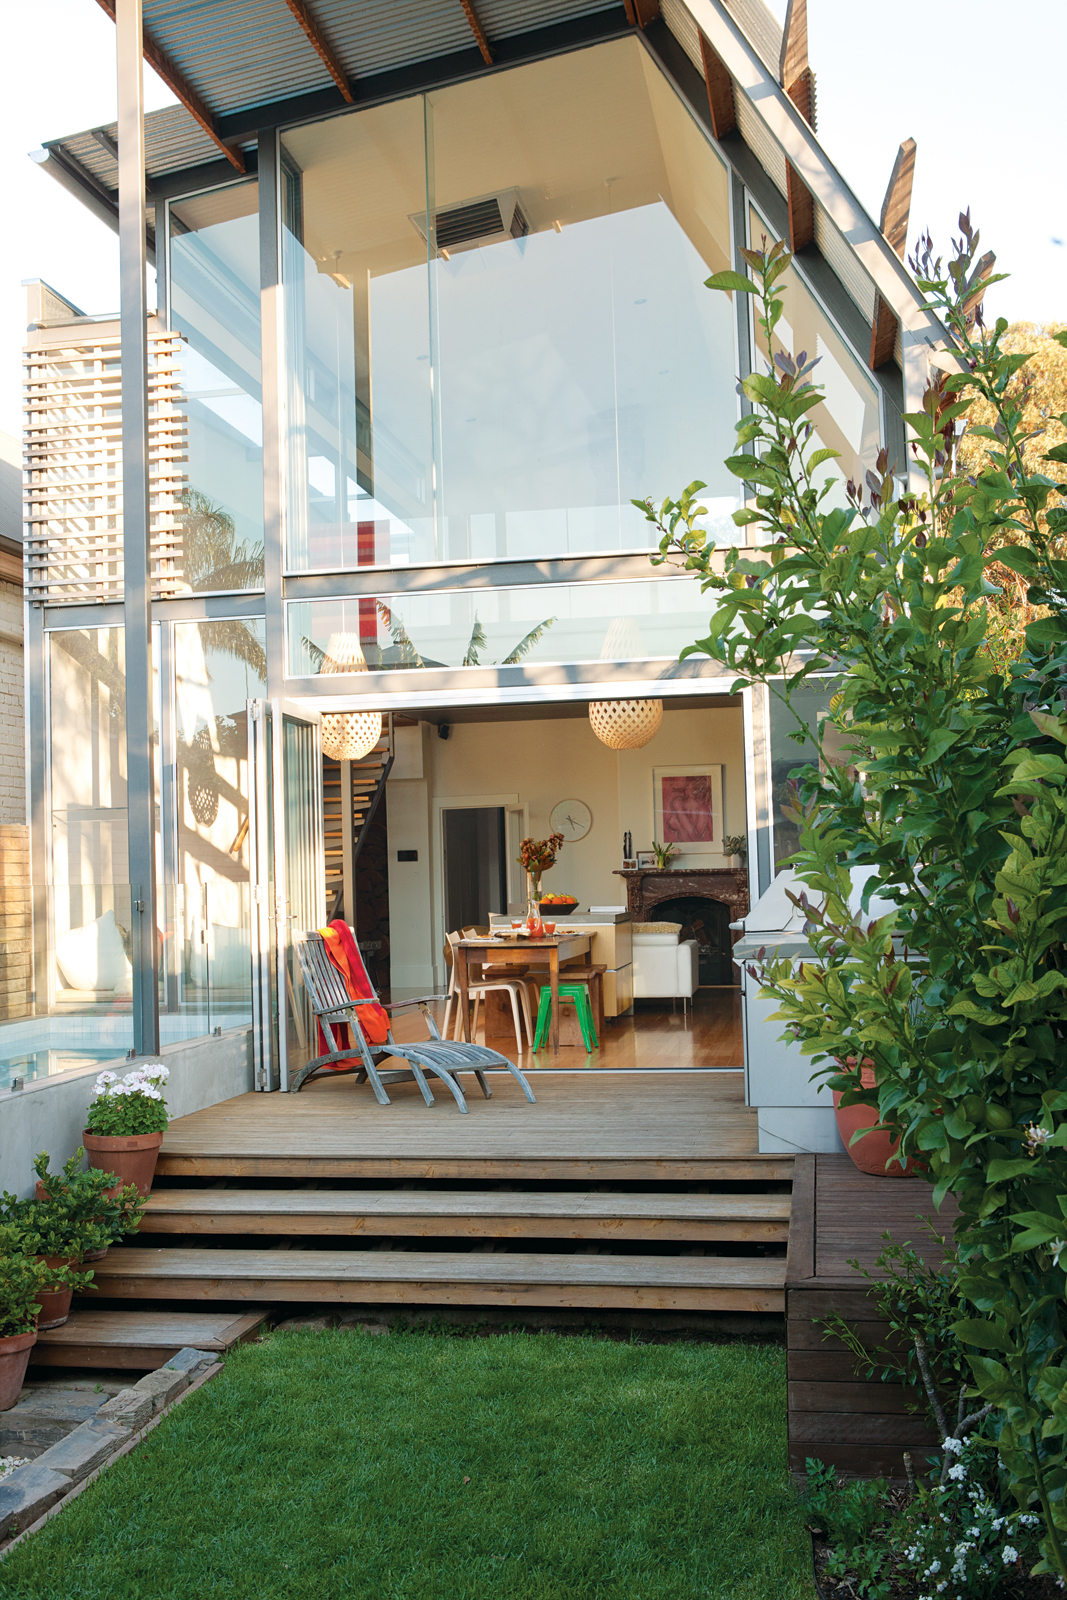 Backyard facade with Viridian ComfortPlus glass windows